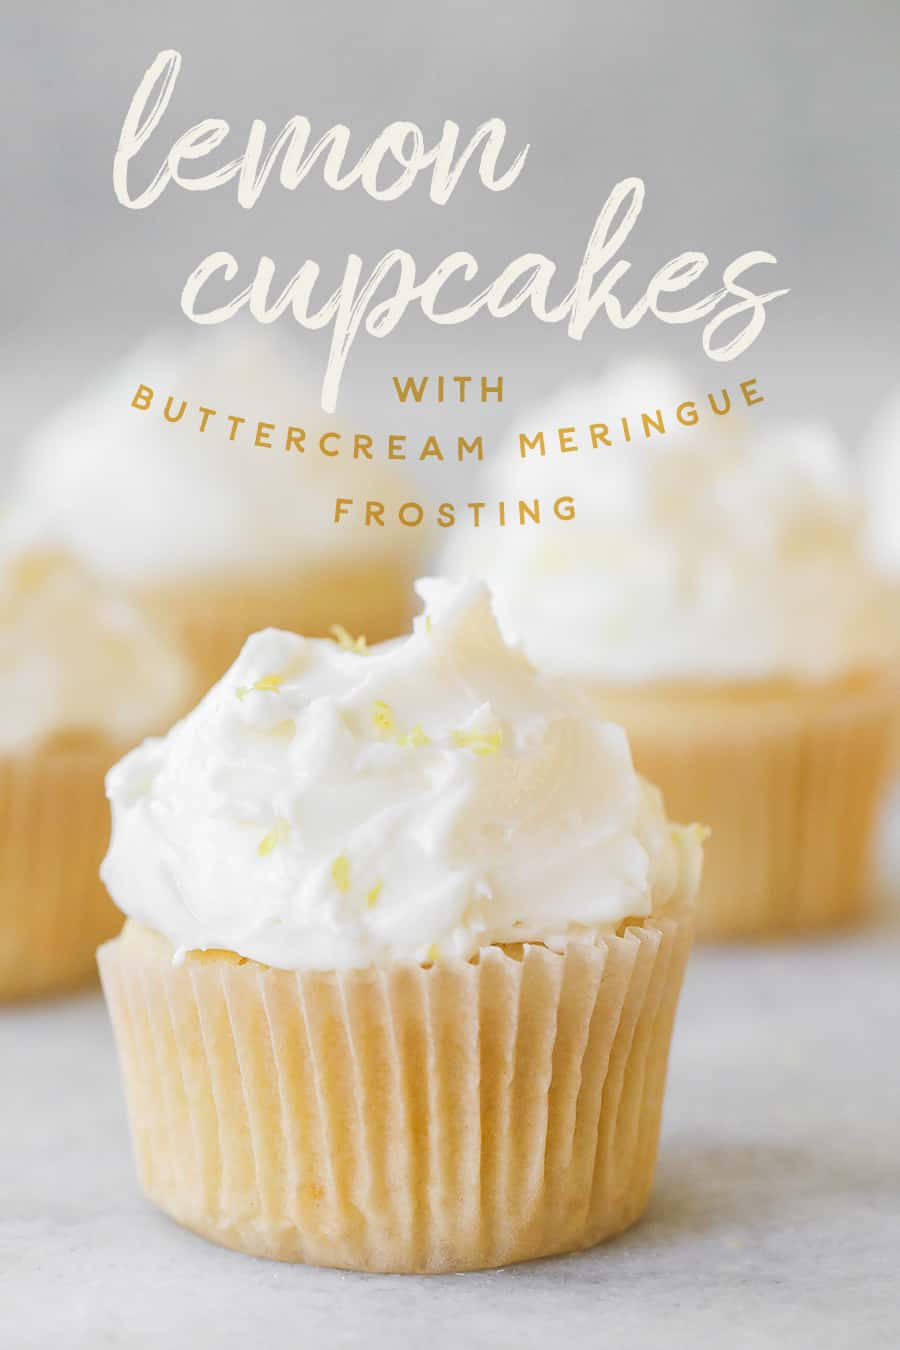 Lemon Cupcakes with Buttercream Meringue Frosting and a graphic title over the photo.